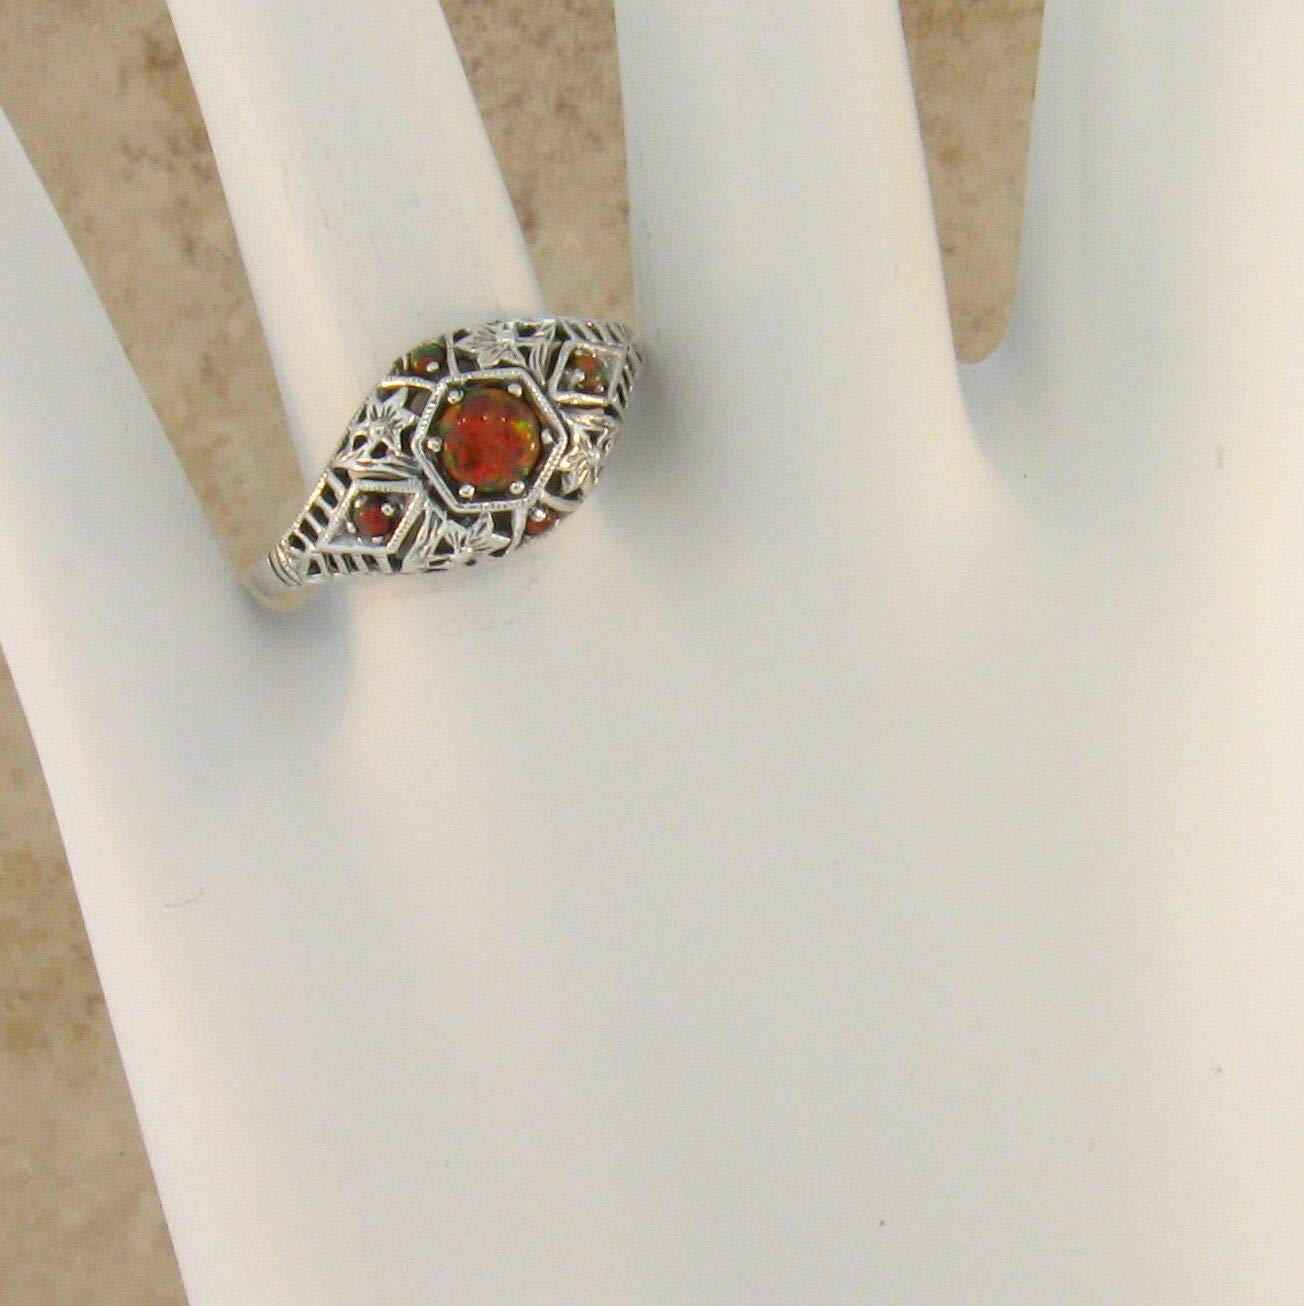 Orange LAB FIRE Opal Antique Deco Style 925 Sterling Silver Ring Size 8.75 KN-1272